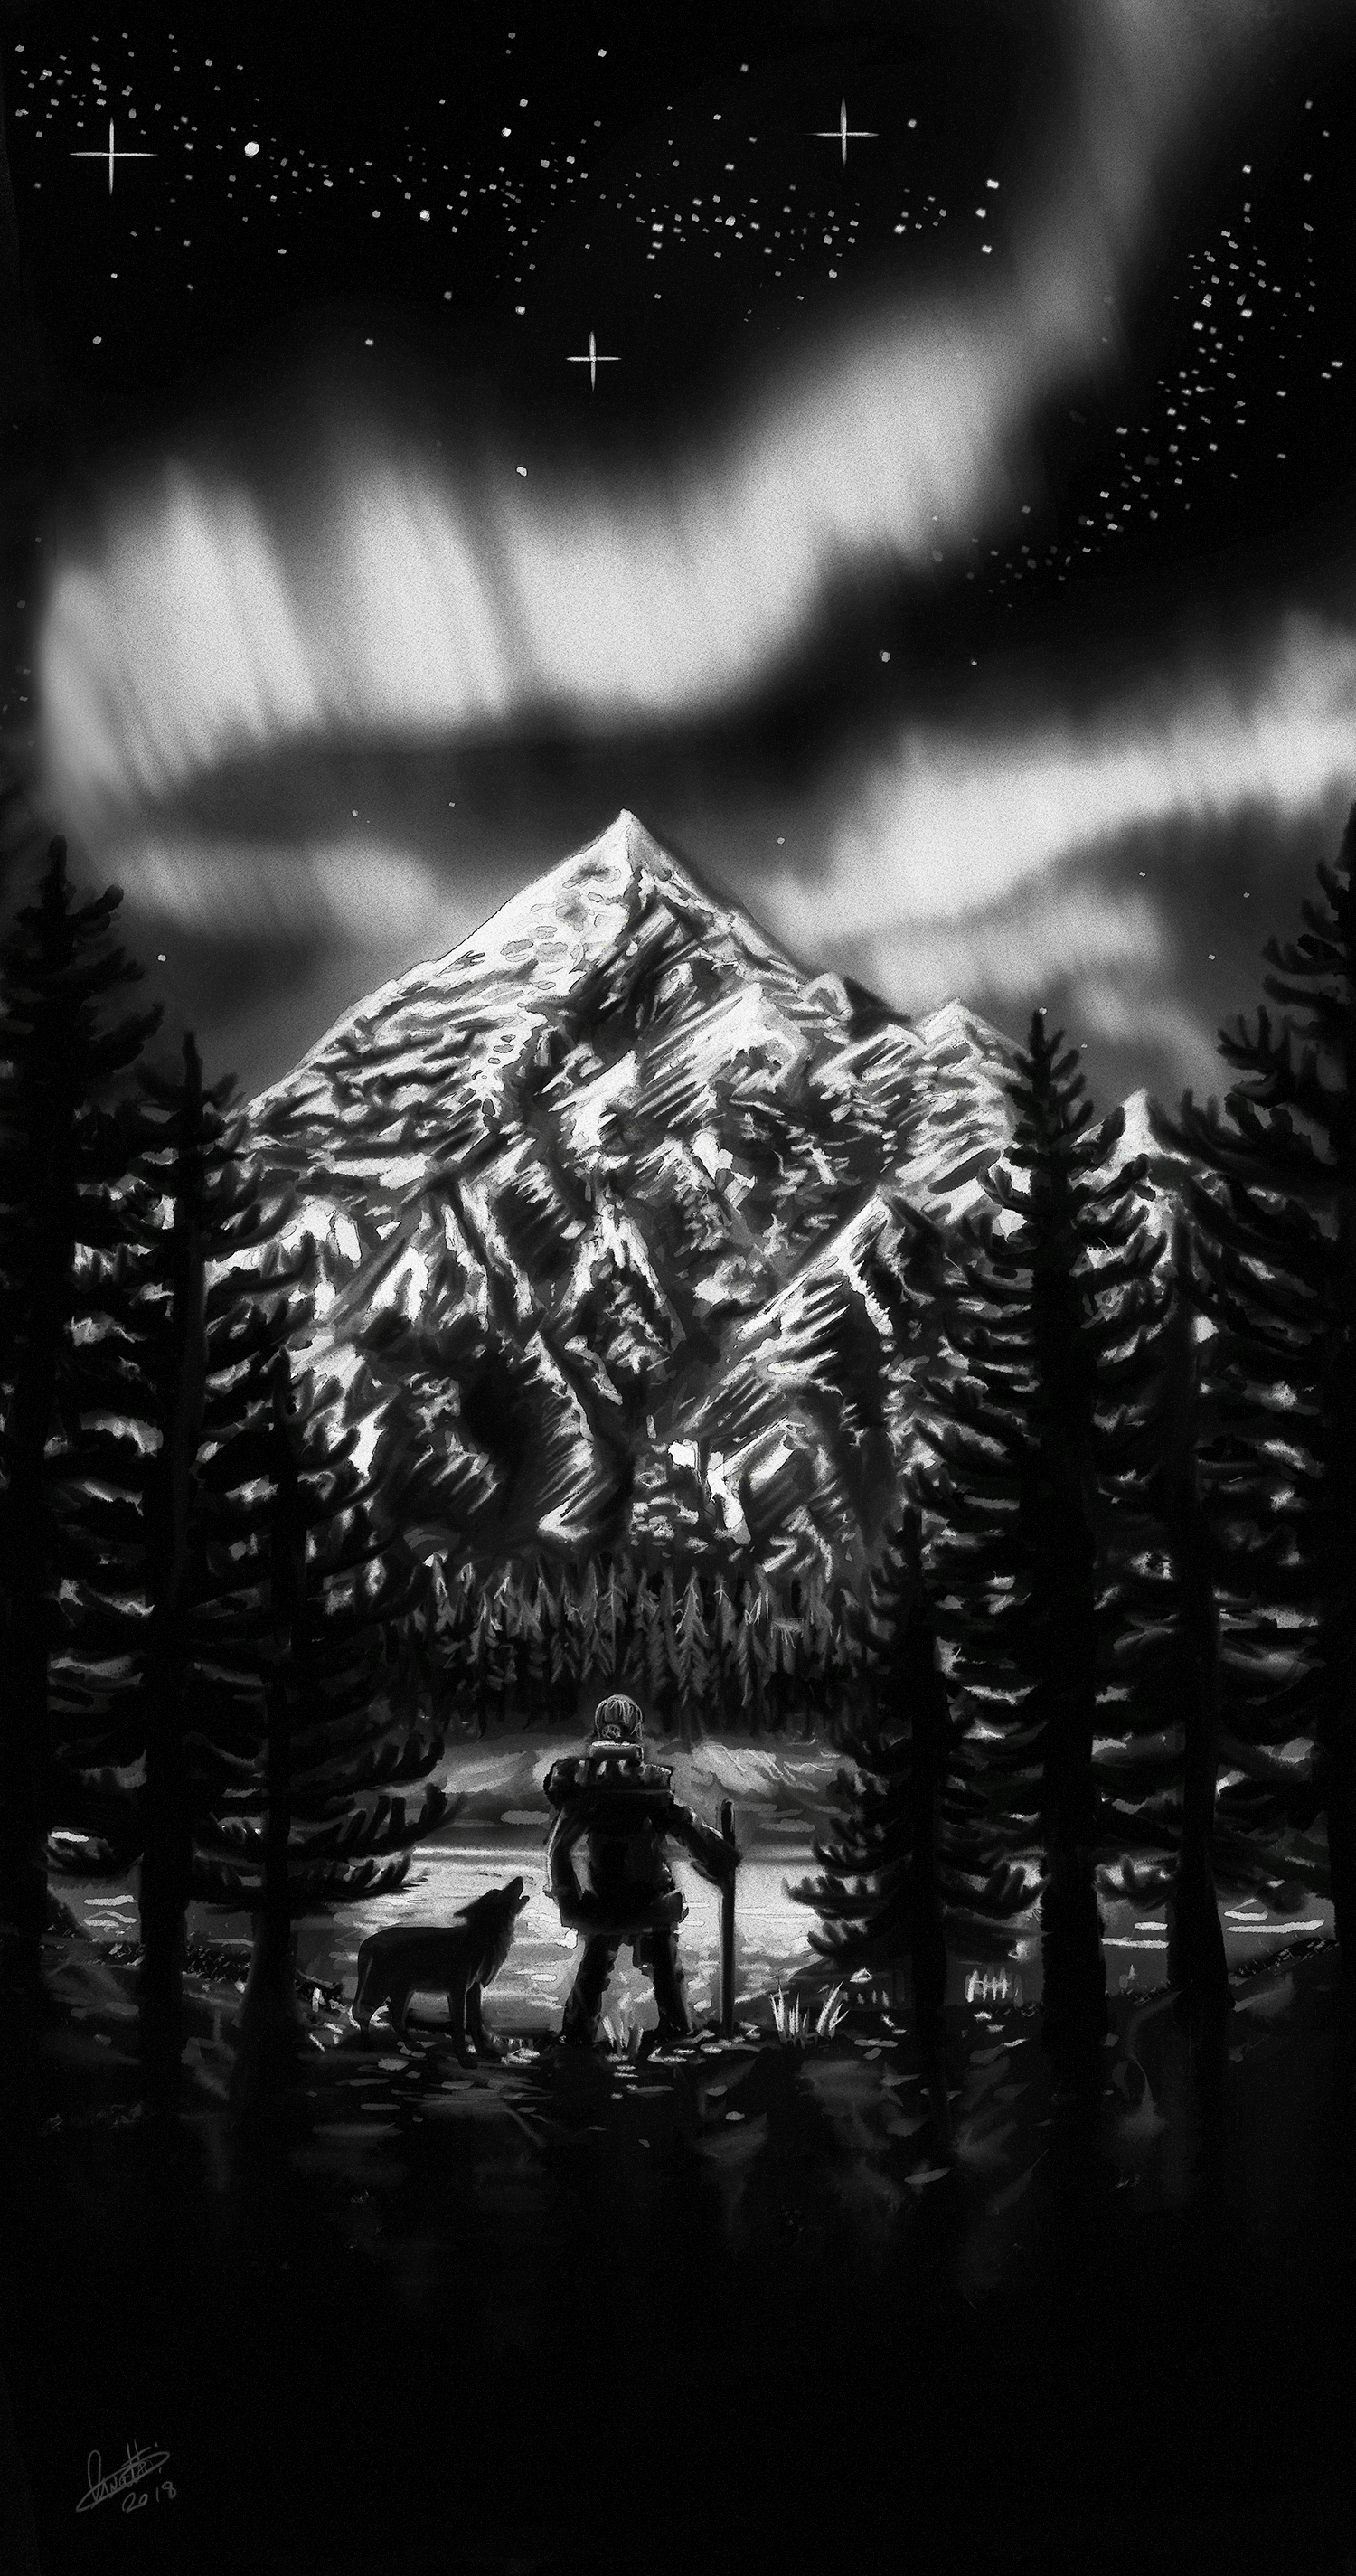 """A Tattoo Design Completed in 2018, the brief was """"A Mountain Scene with an Aurora, lots of snow. Pine trees, The Tattoo had to match an existing tattoo in its art style."""